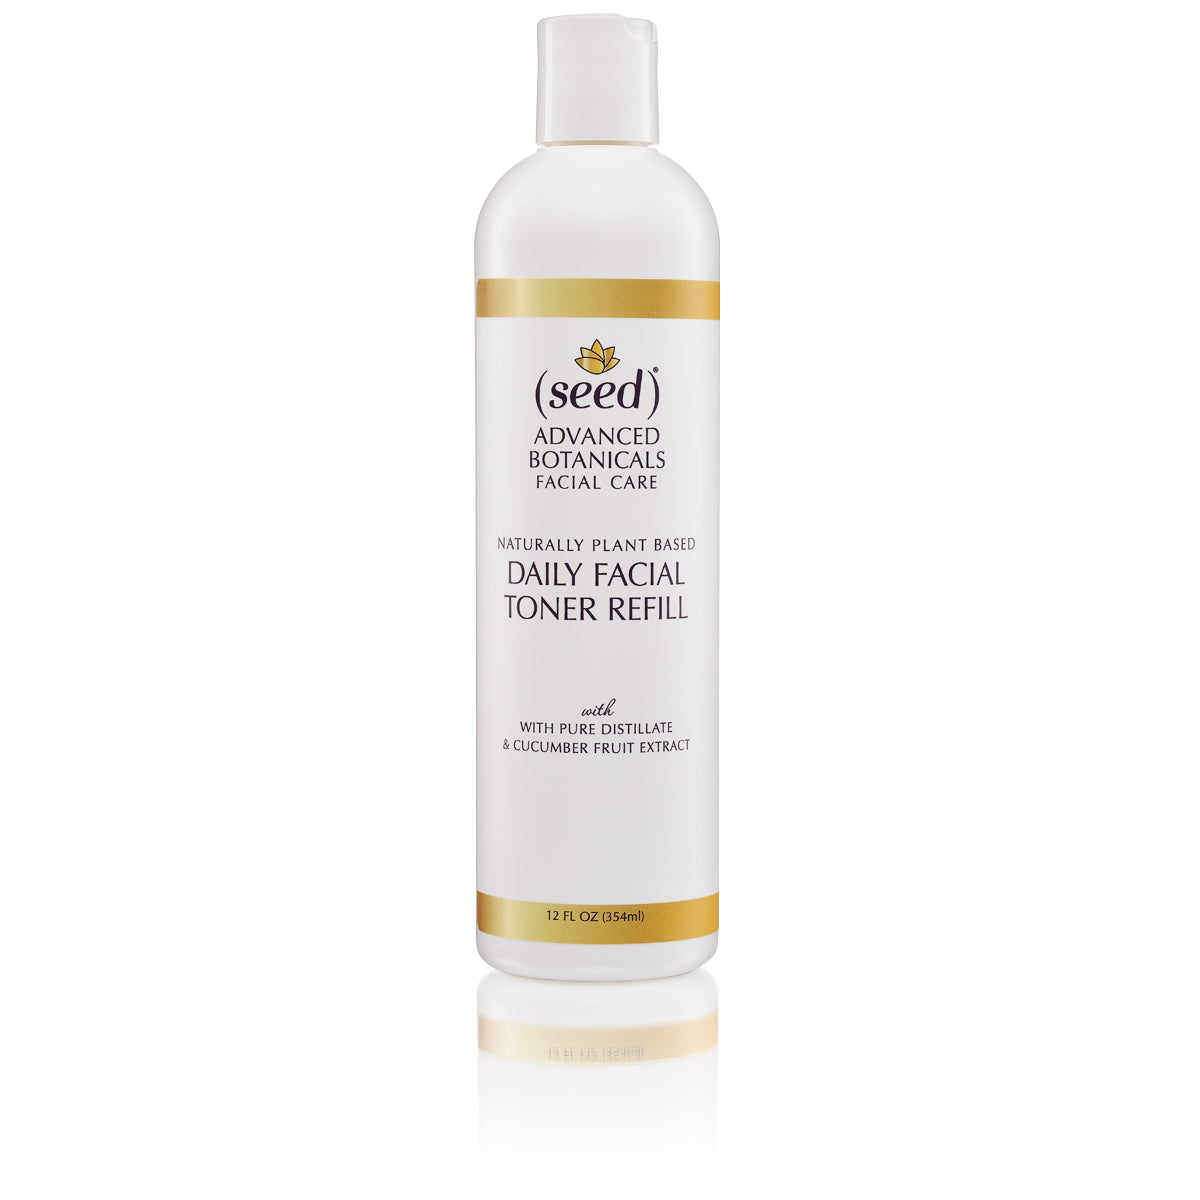 Seed Advanced Botanicals Facial Toner Refill